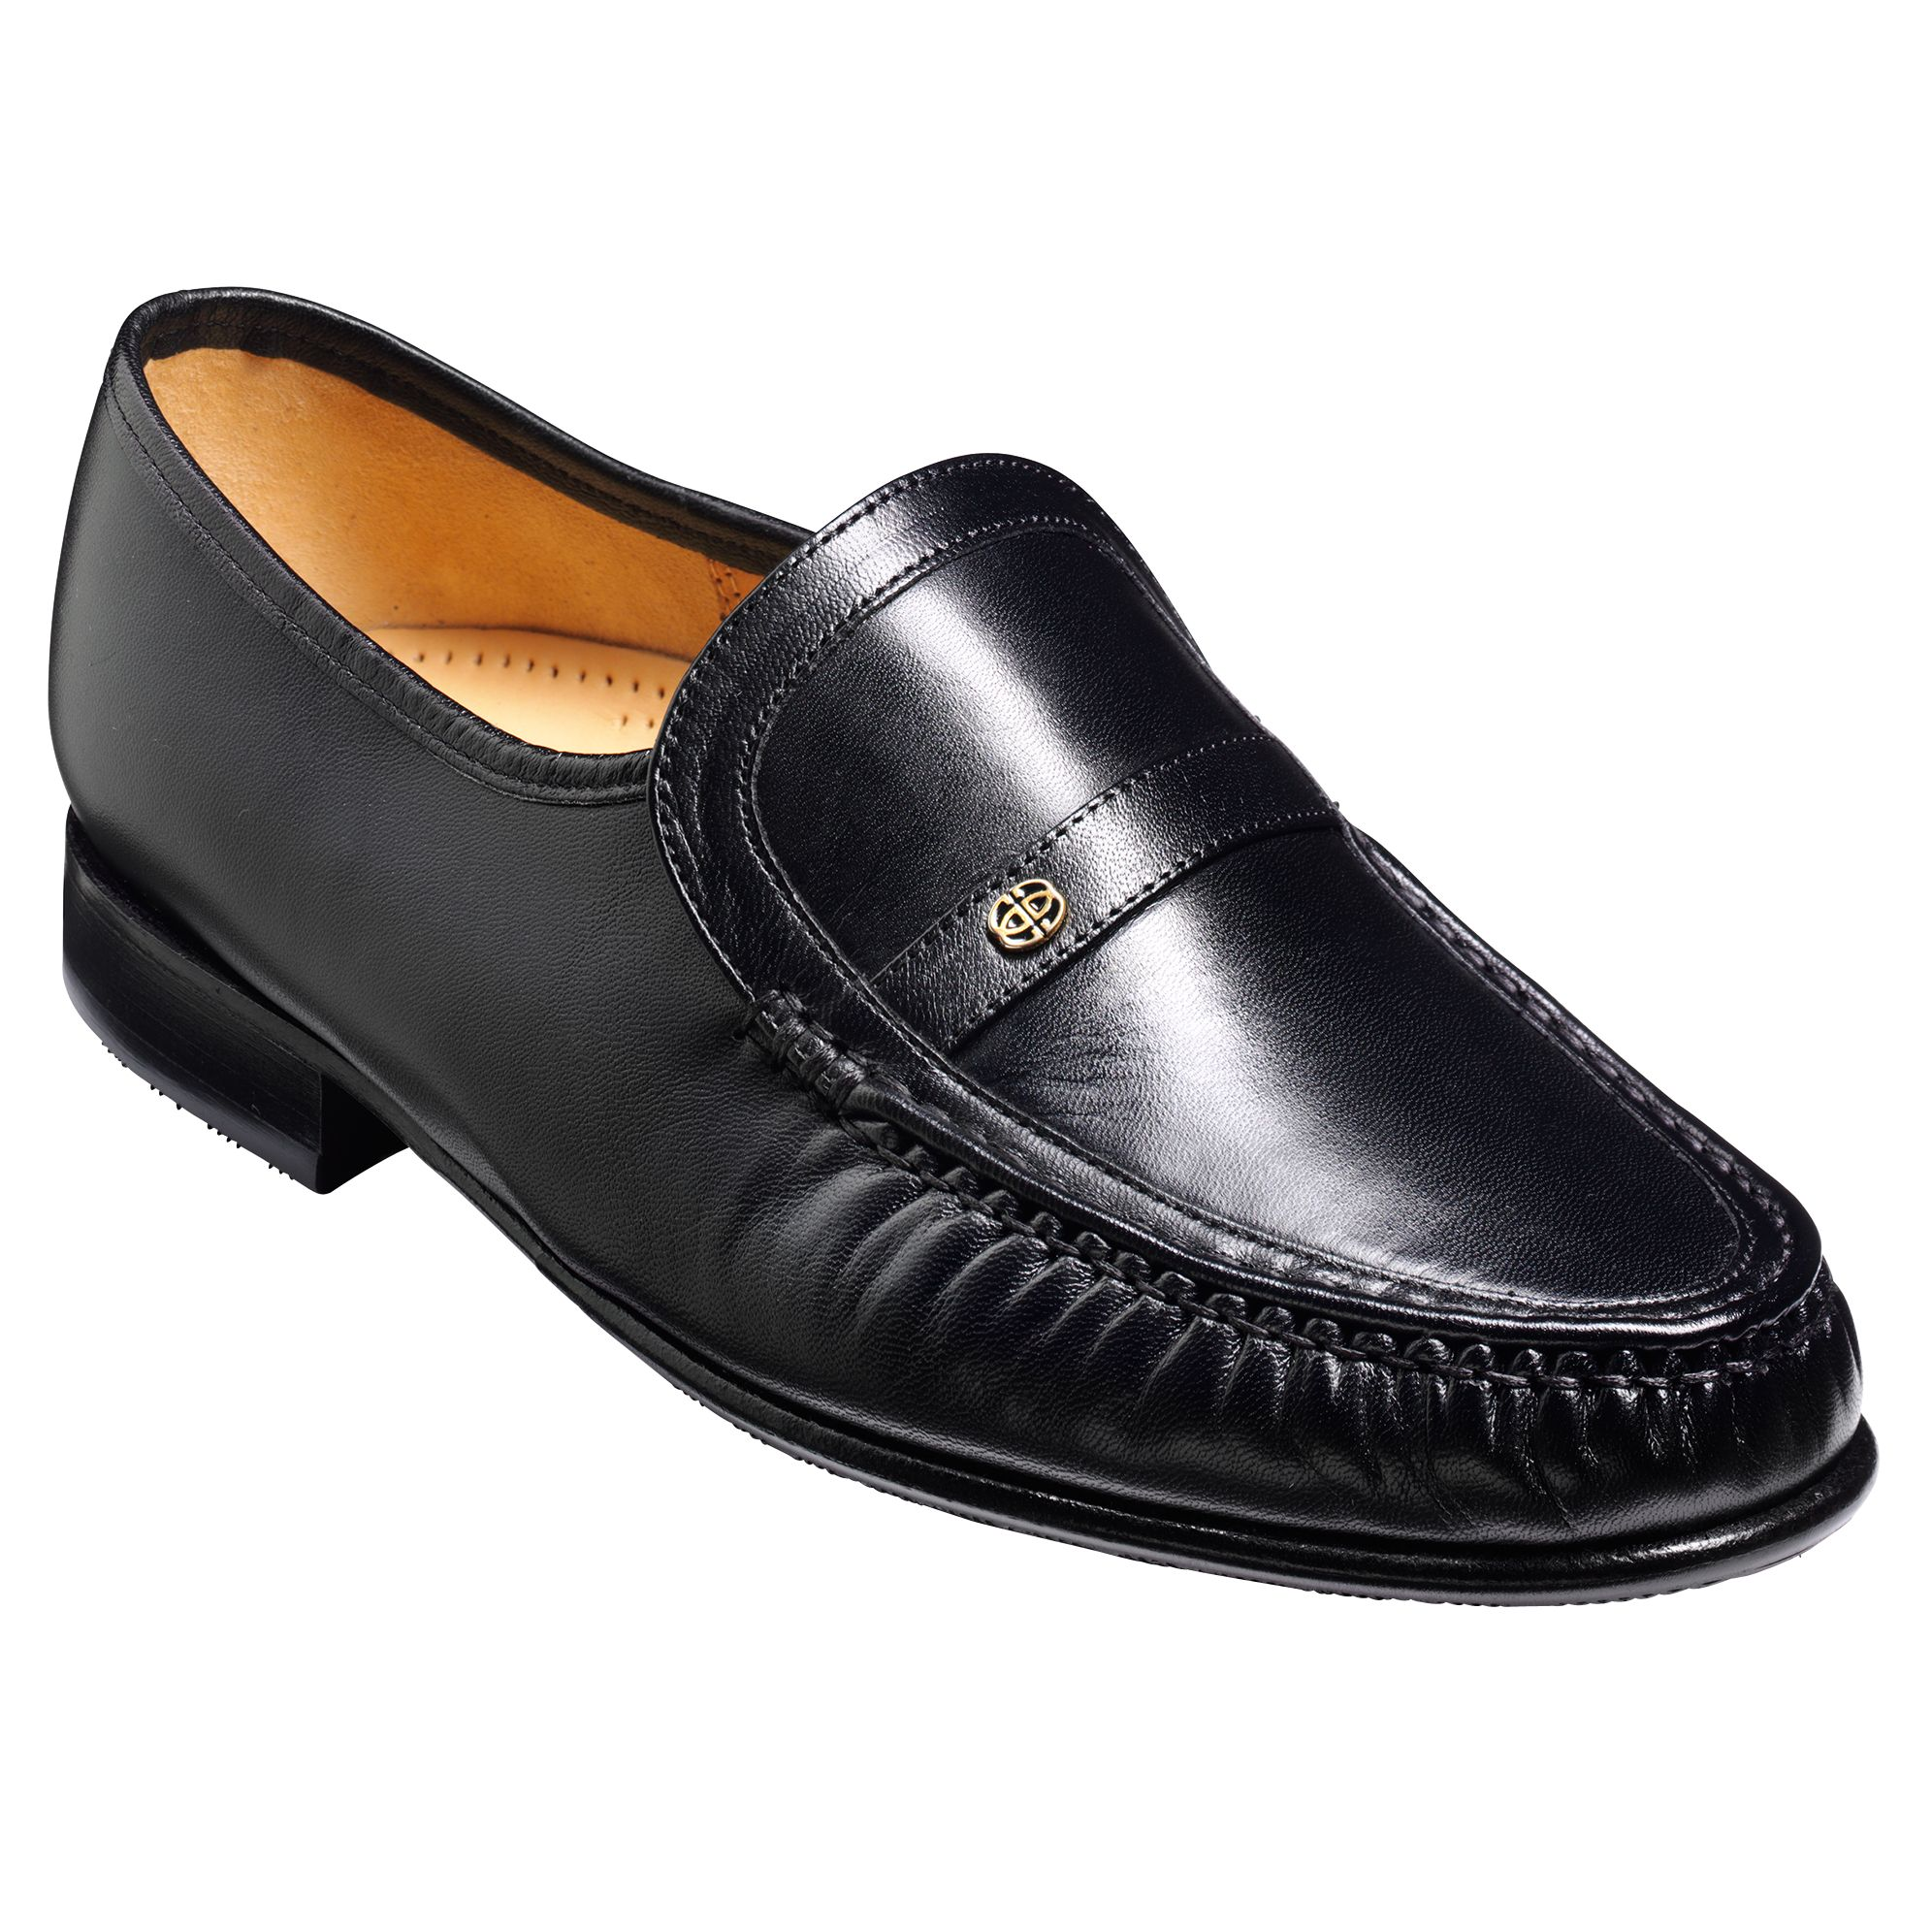 Barker Barkers Jefferson Leather Moccasin Shoes, Black